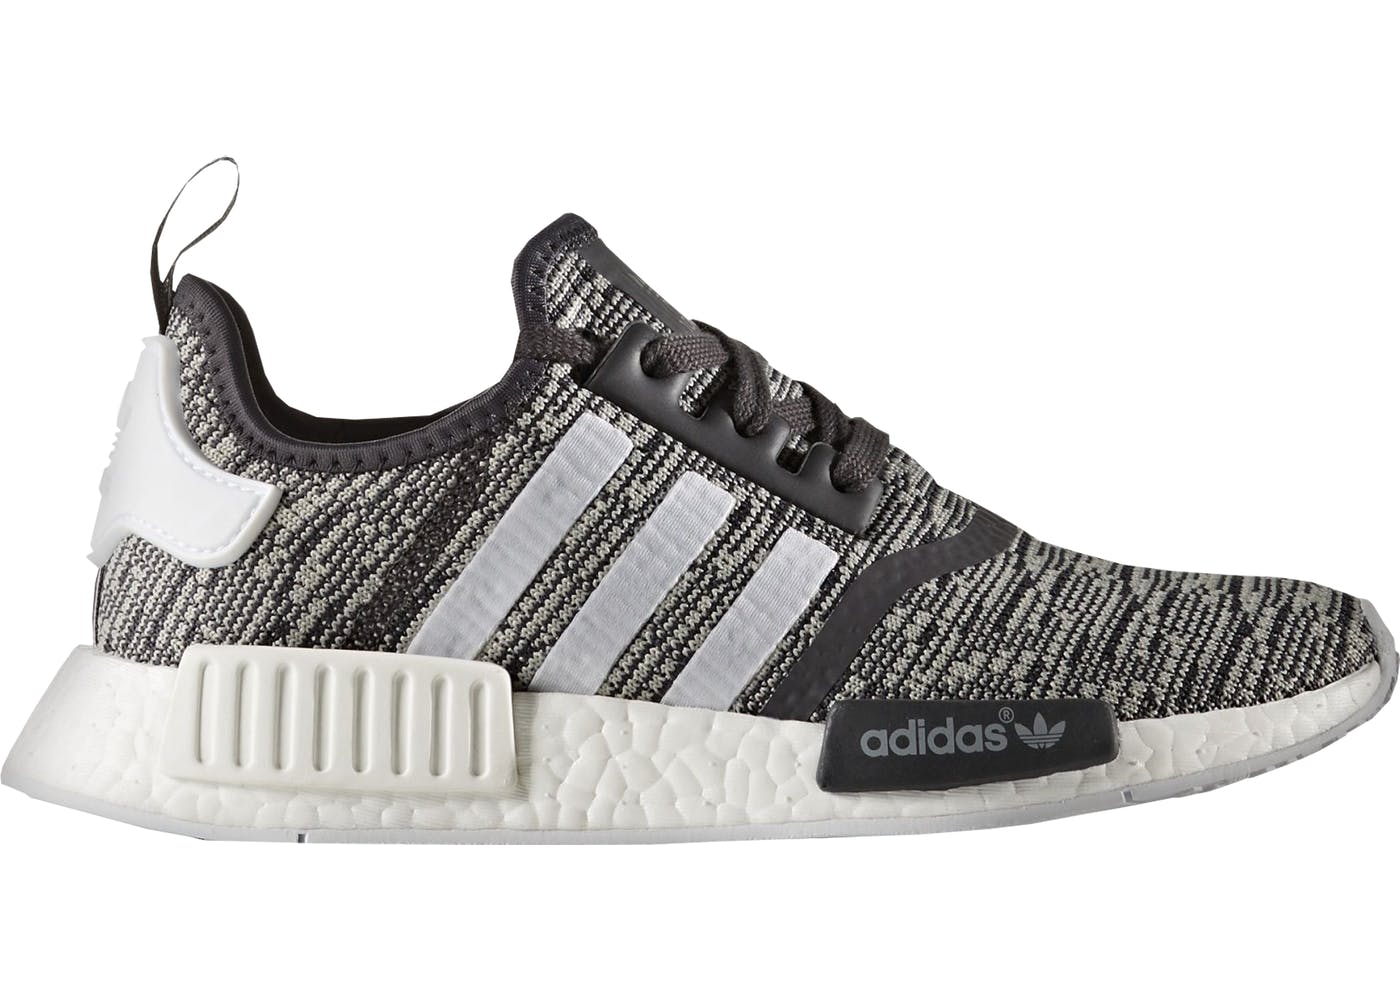 2017 Cheap NMD Xr1 Online Store Wholesale Price Sales,Buy Cheap NMD R1